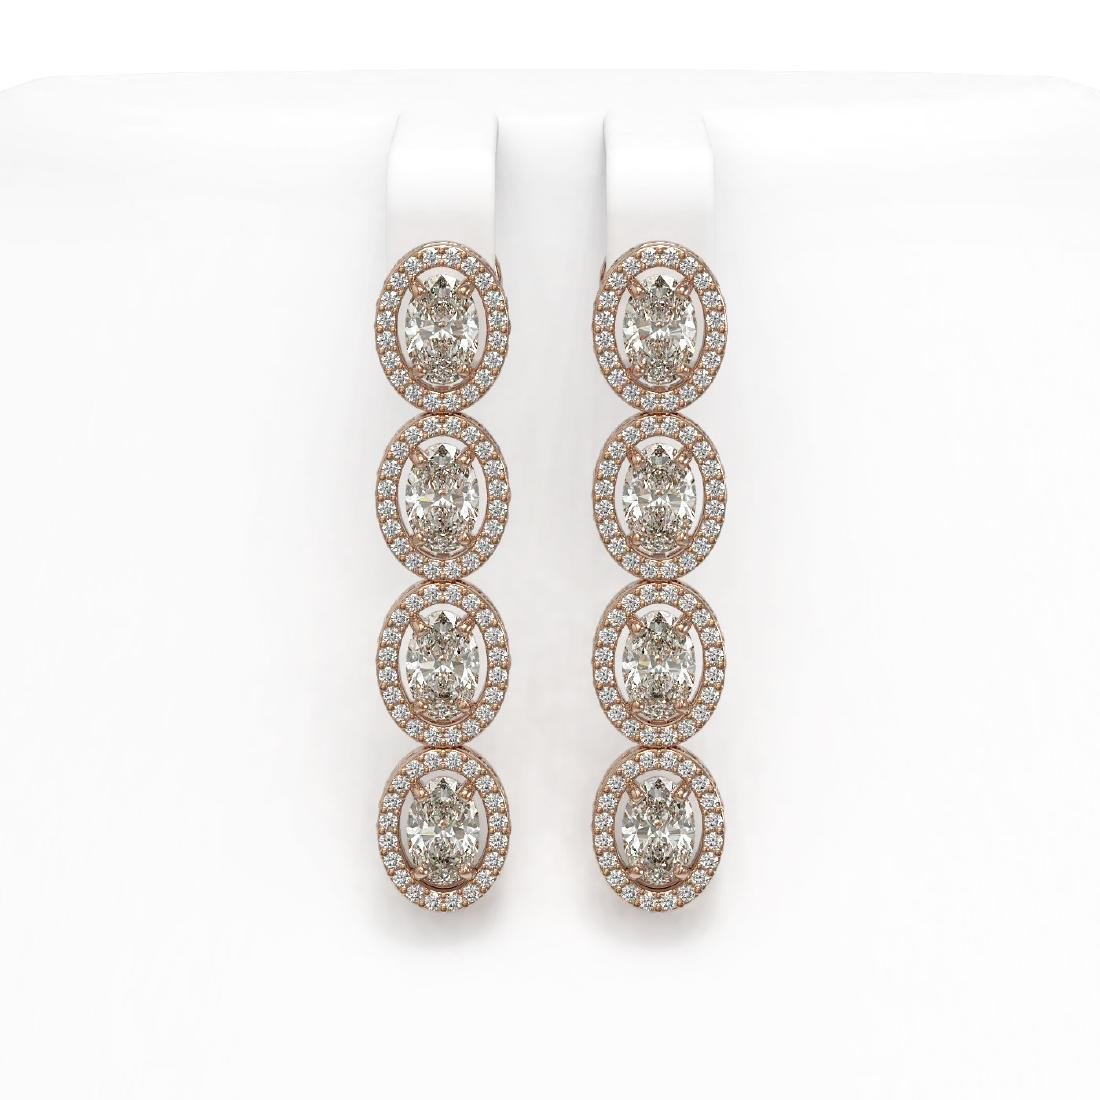 6.08 CTW Oval Diamond Designer Earrings 18K Rose Gold